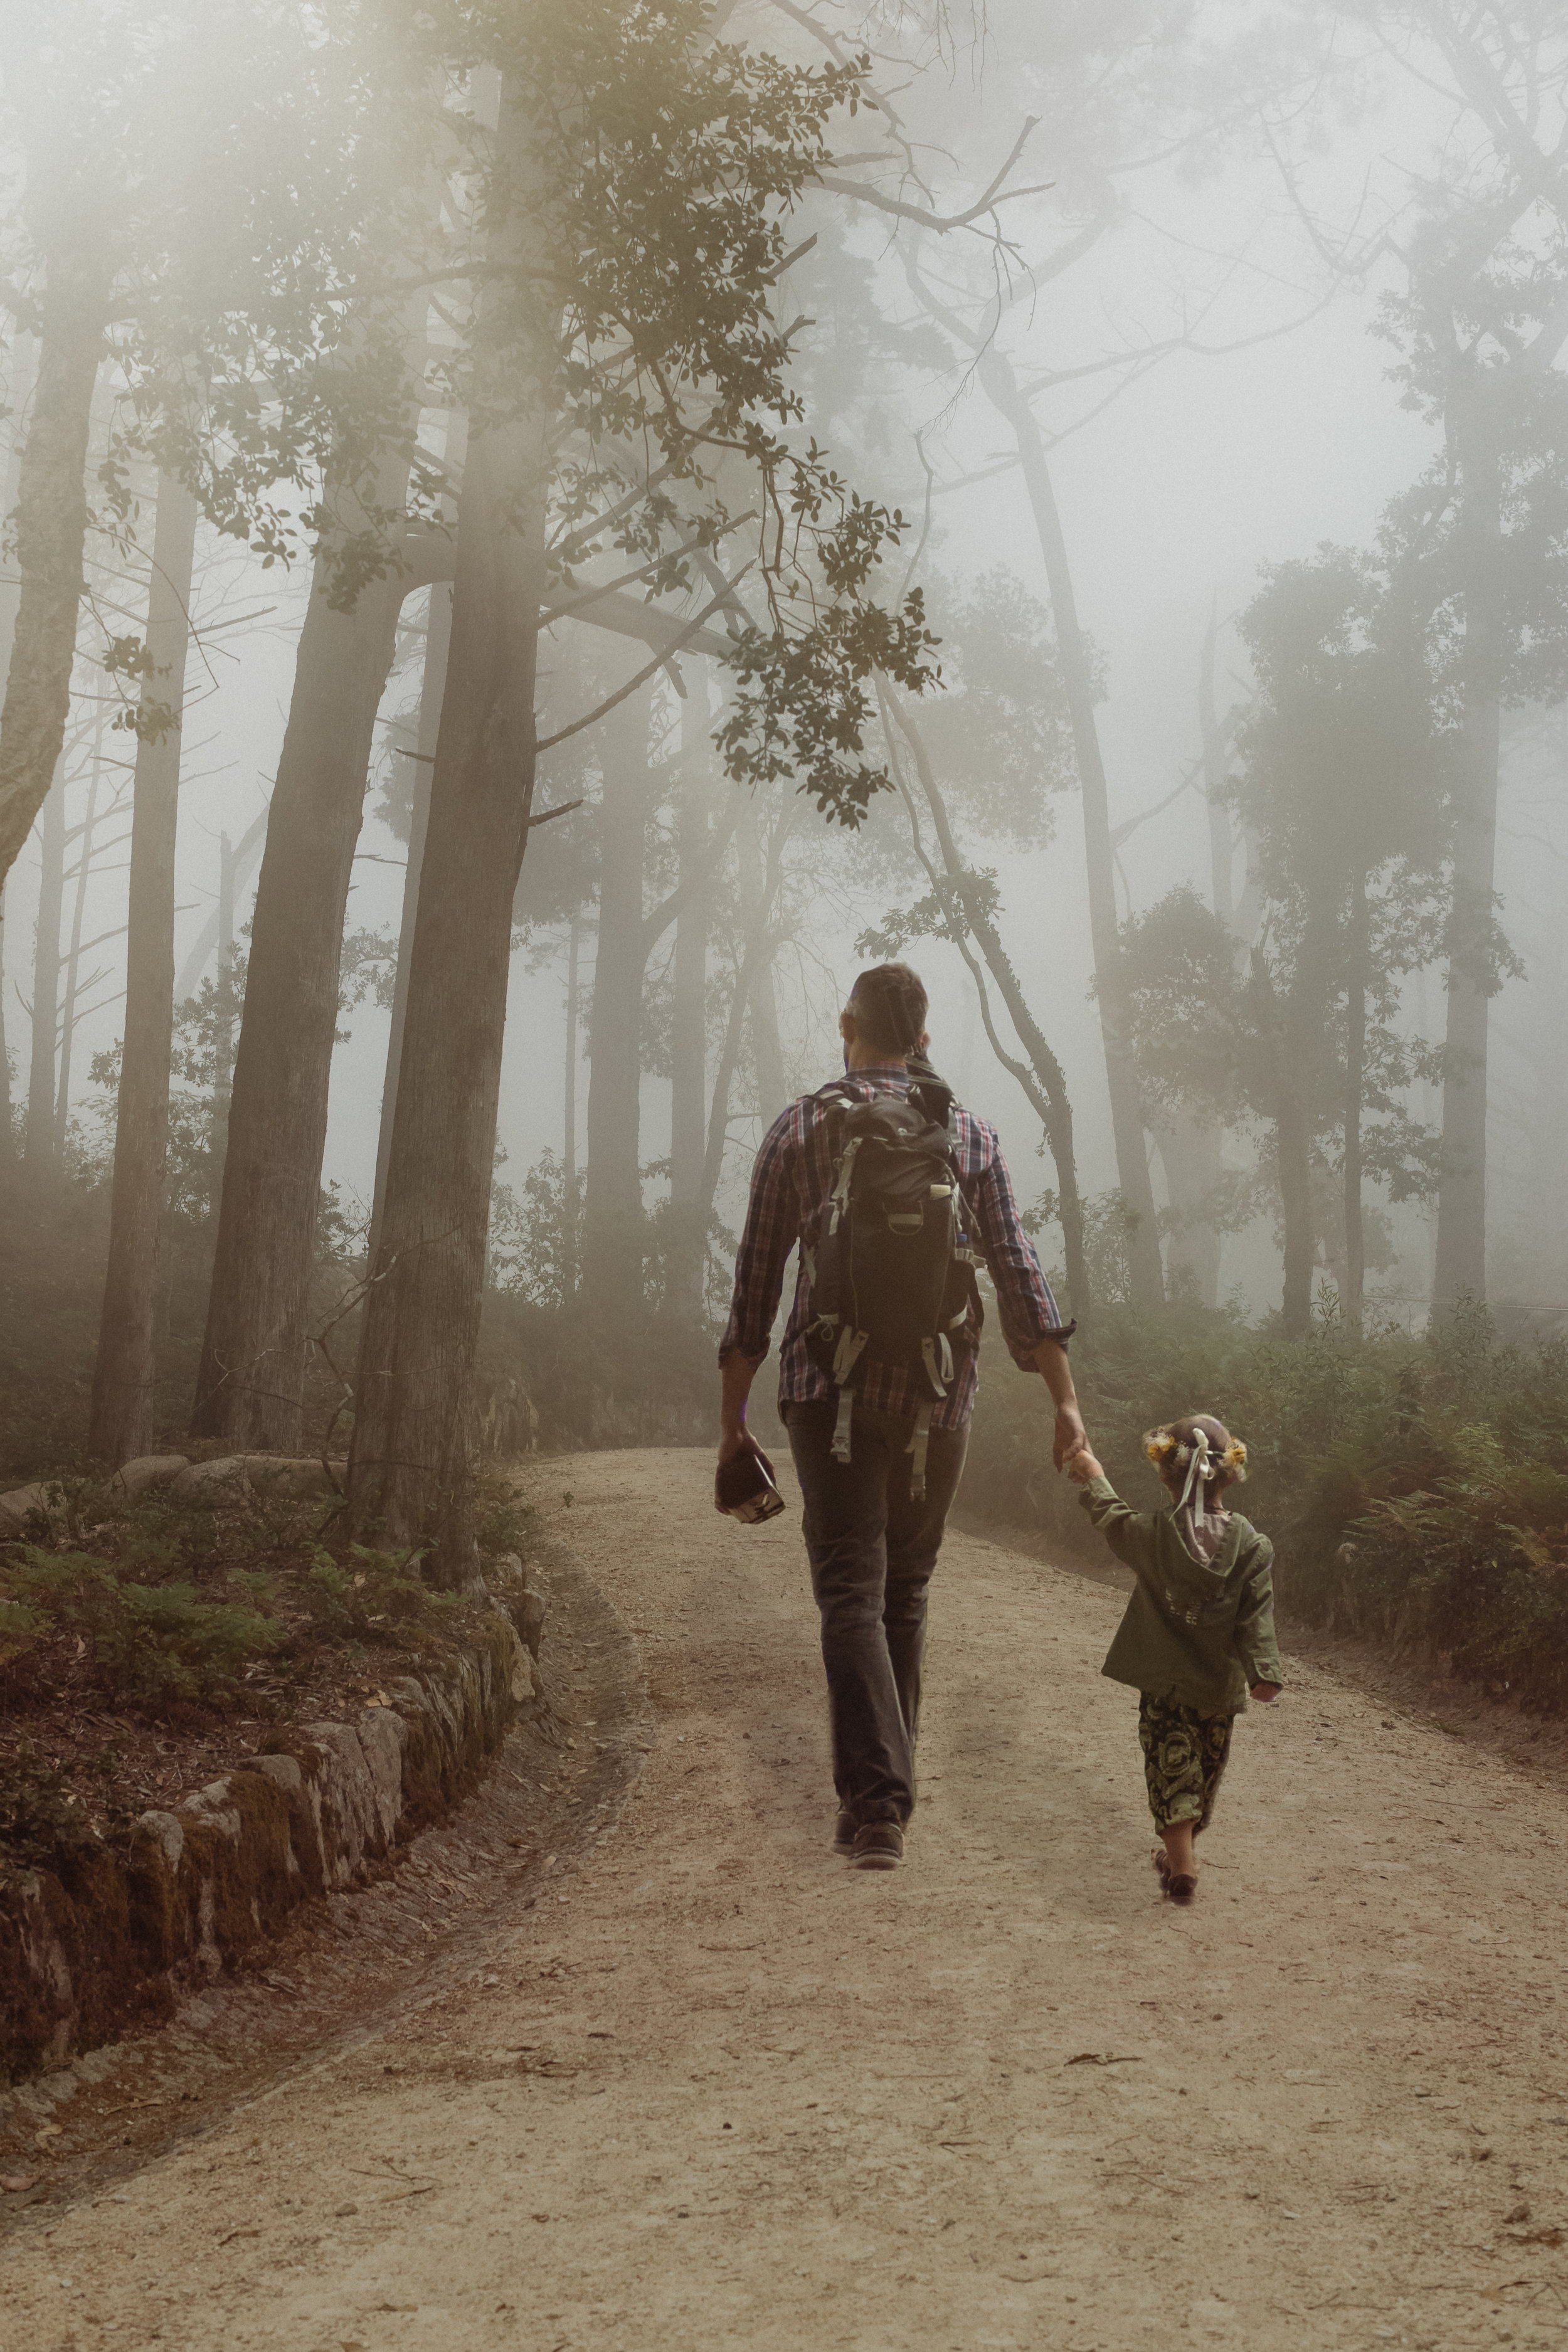 father walking hand and hand with his daughter through the foggy forest